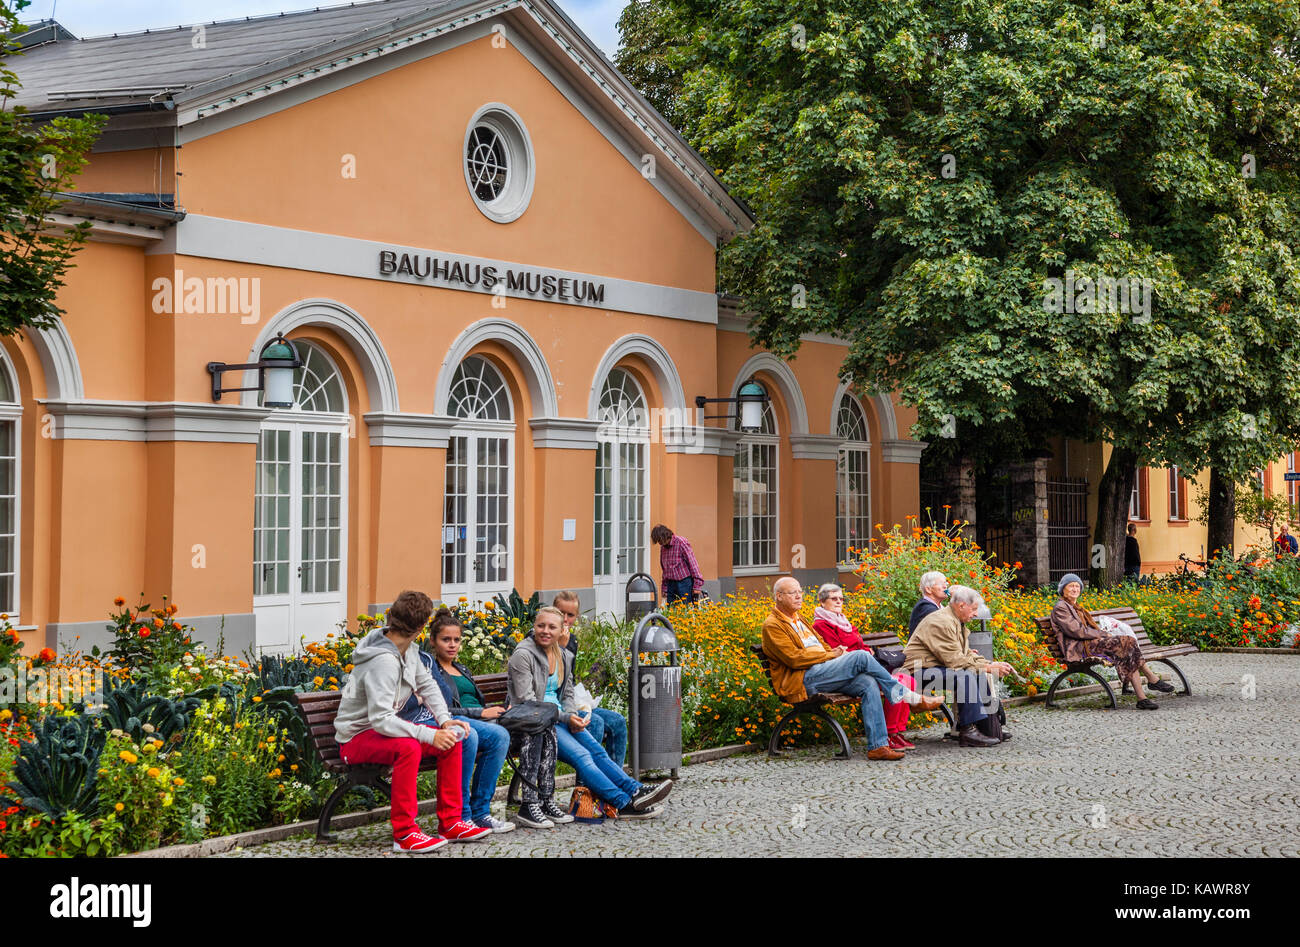 Germany, Thuringia, Weimar, Theaterplatz, view of the Bauhaus Museum dedicated to the architectural style of Bauhaus - Stock Image